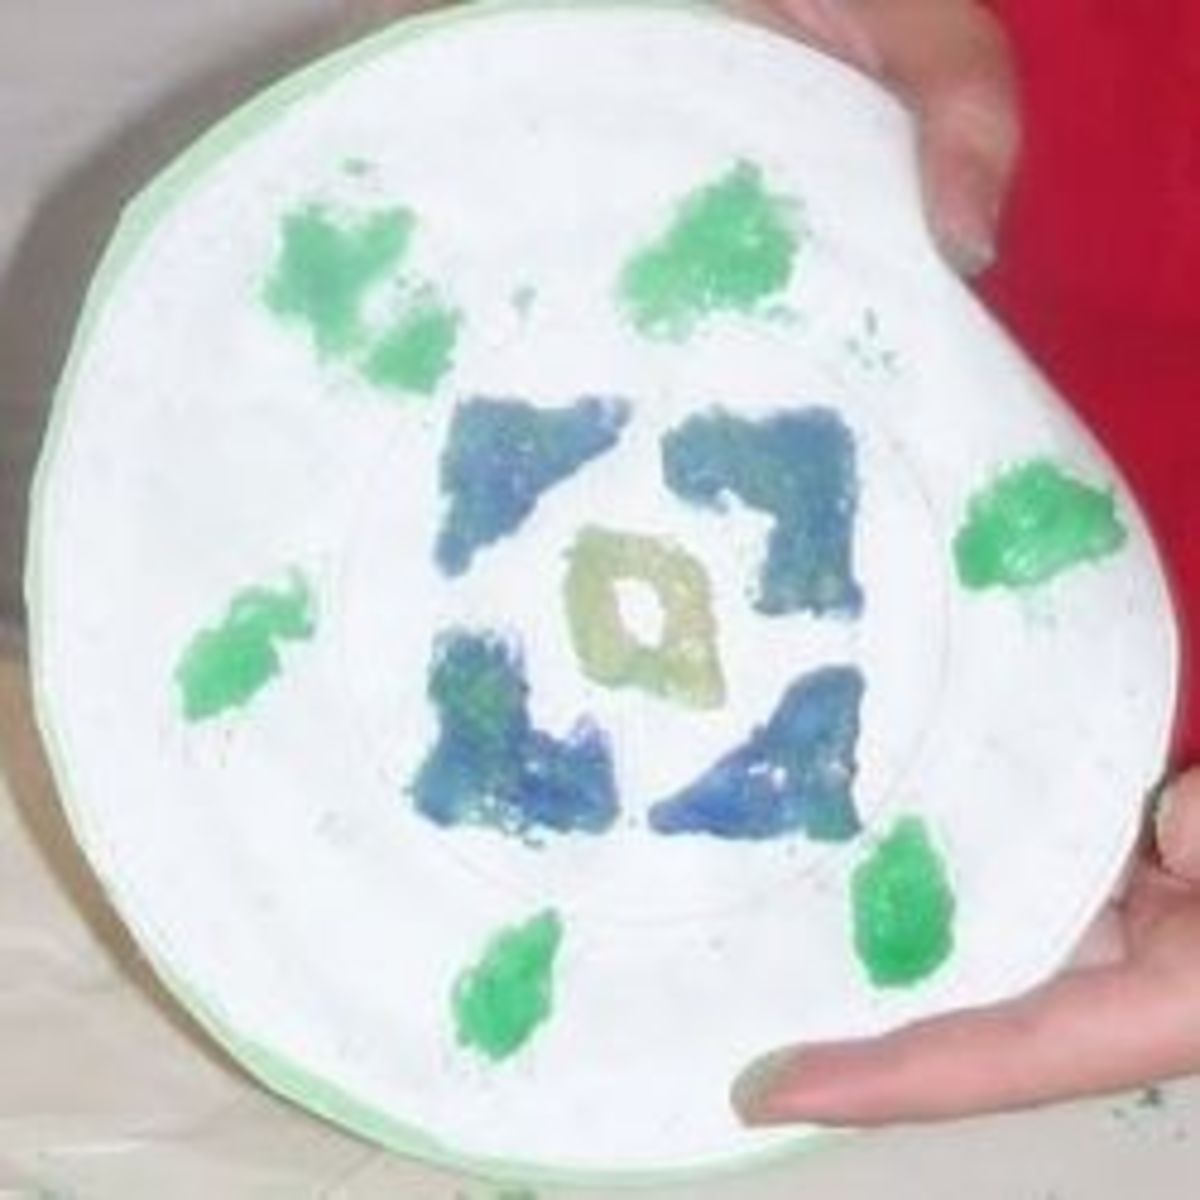 Navajo Sand Painting Craft Activity